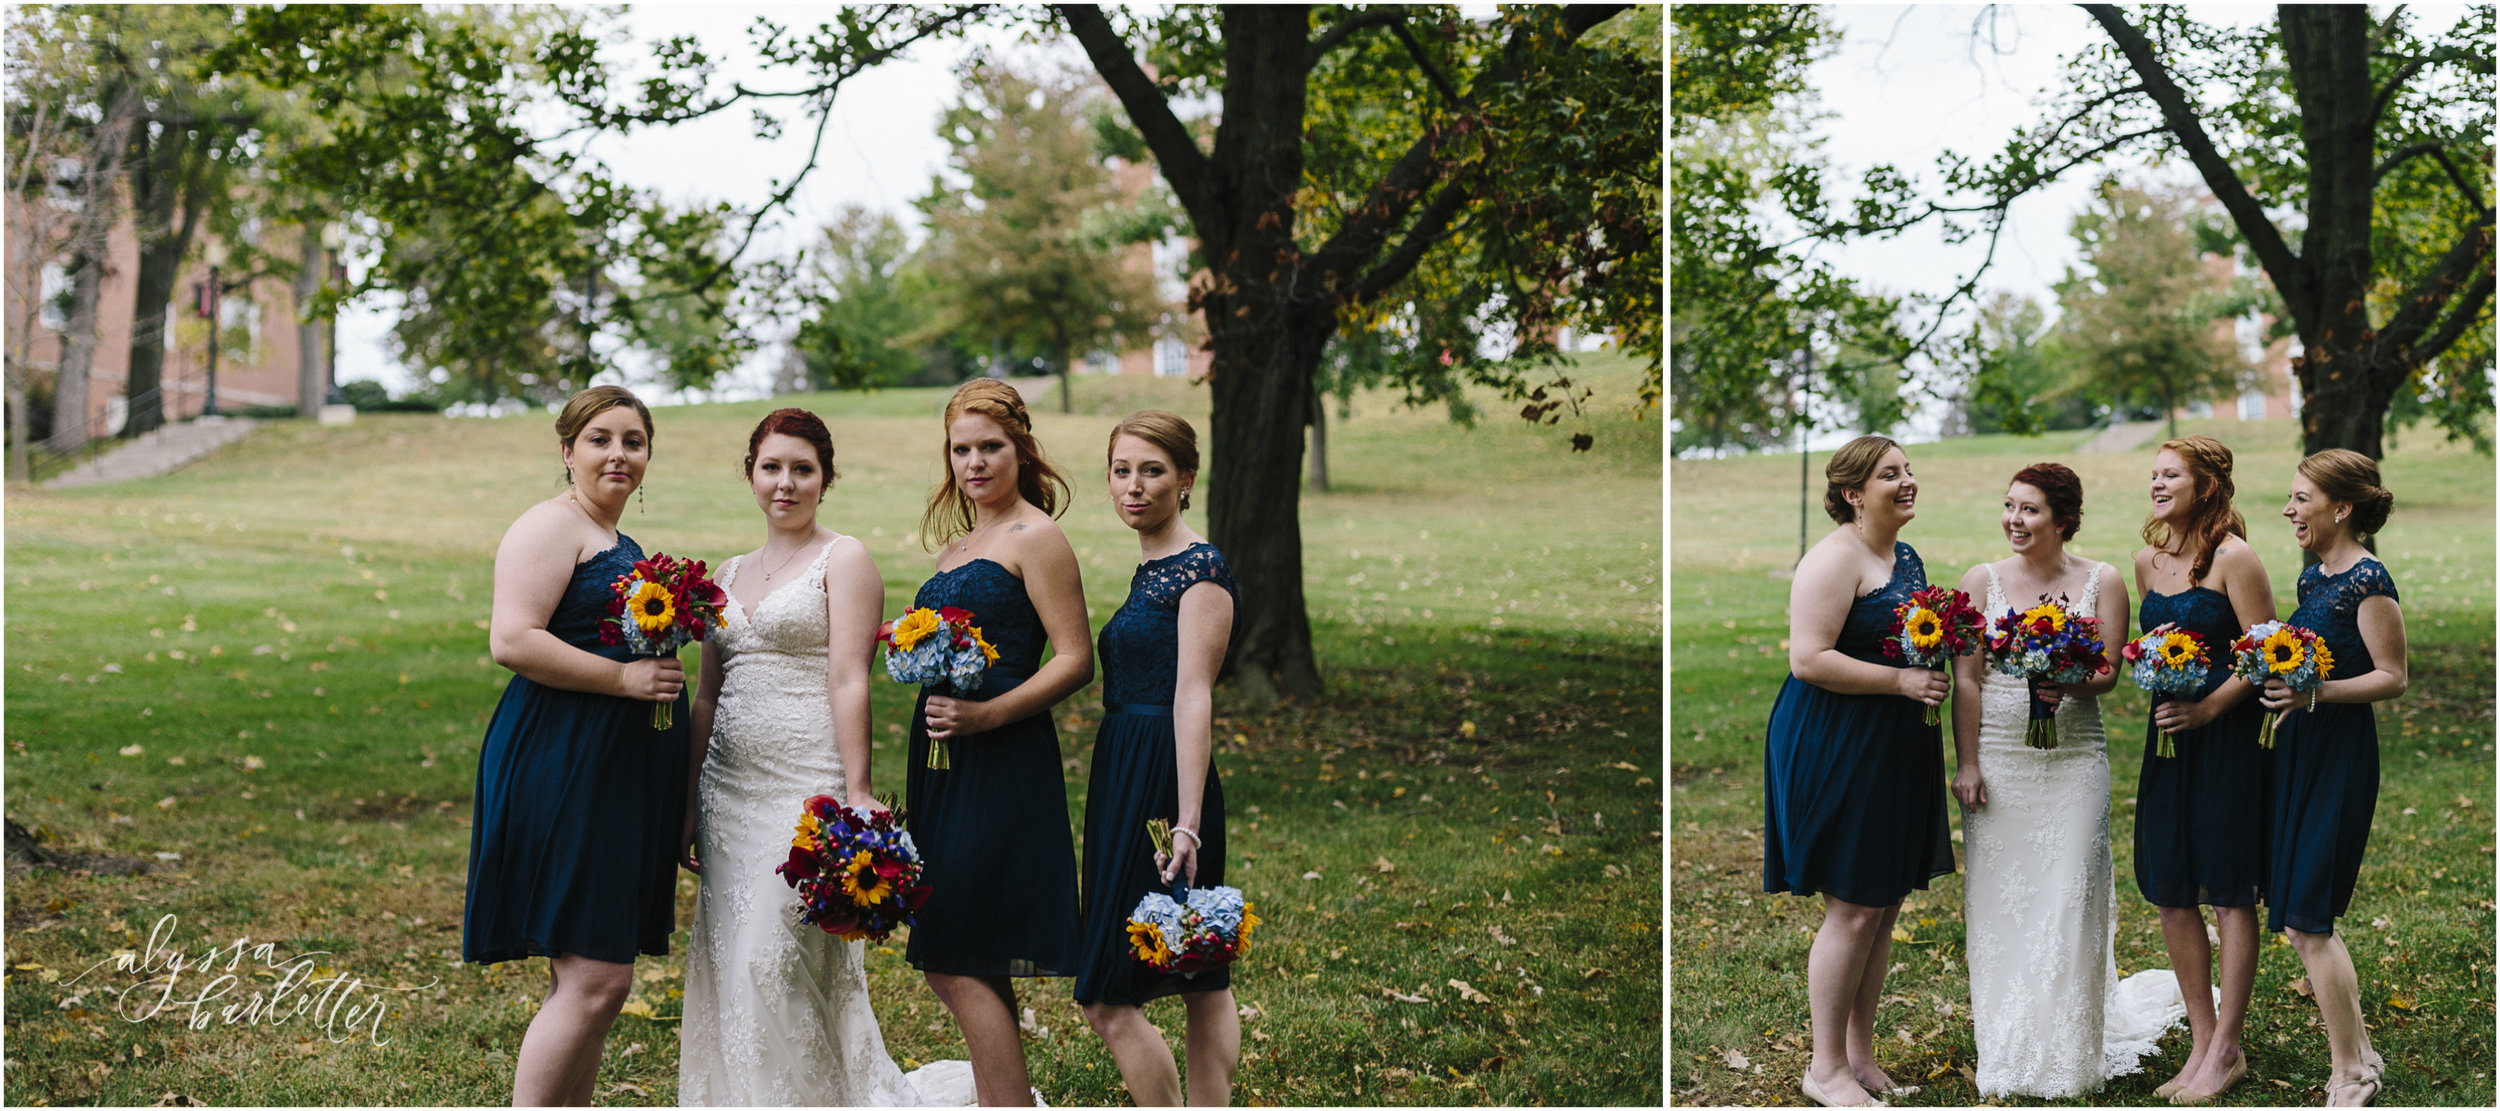 alyssa barletter photography wedding liberty missouri hipster quirky alex and shawn-1-22.jpg